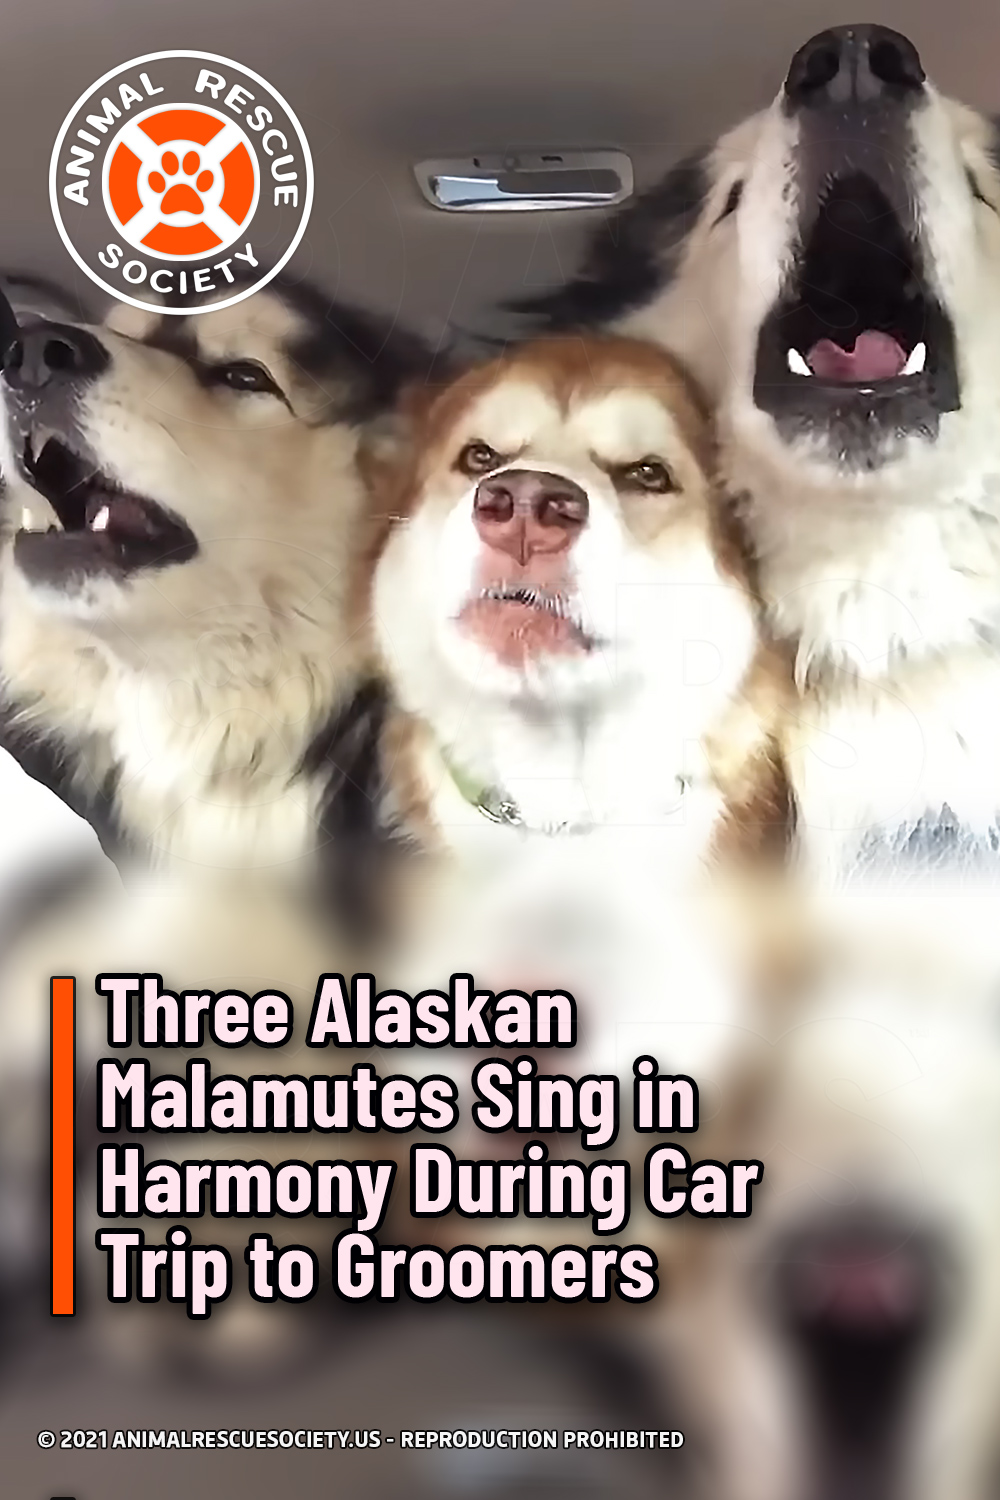 Three Alaskan Malamutes Sing in Harmony During Car Trip to Groomers